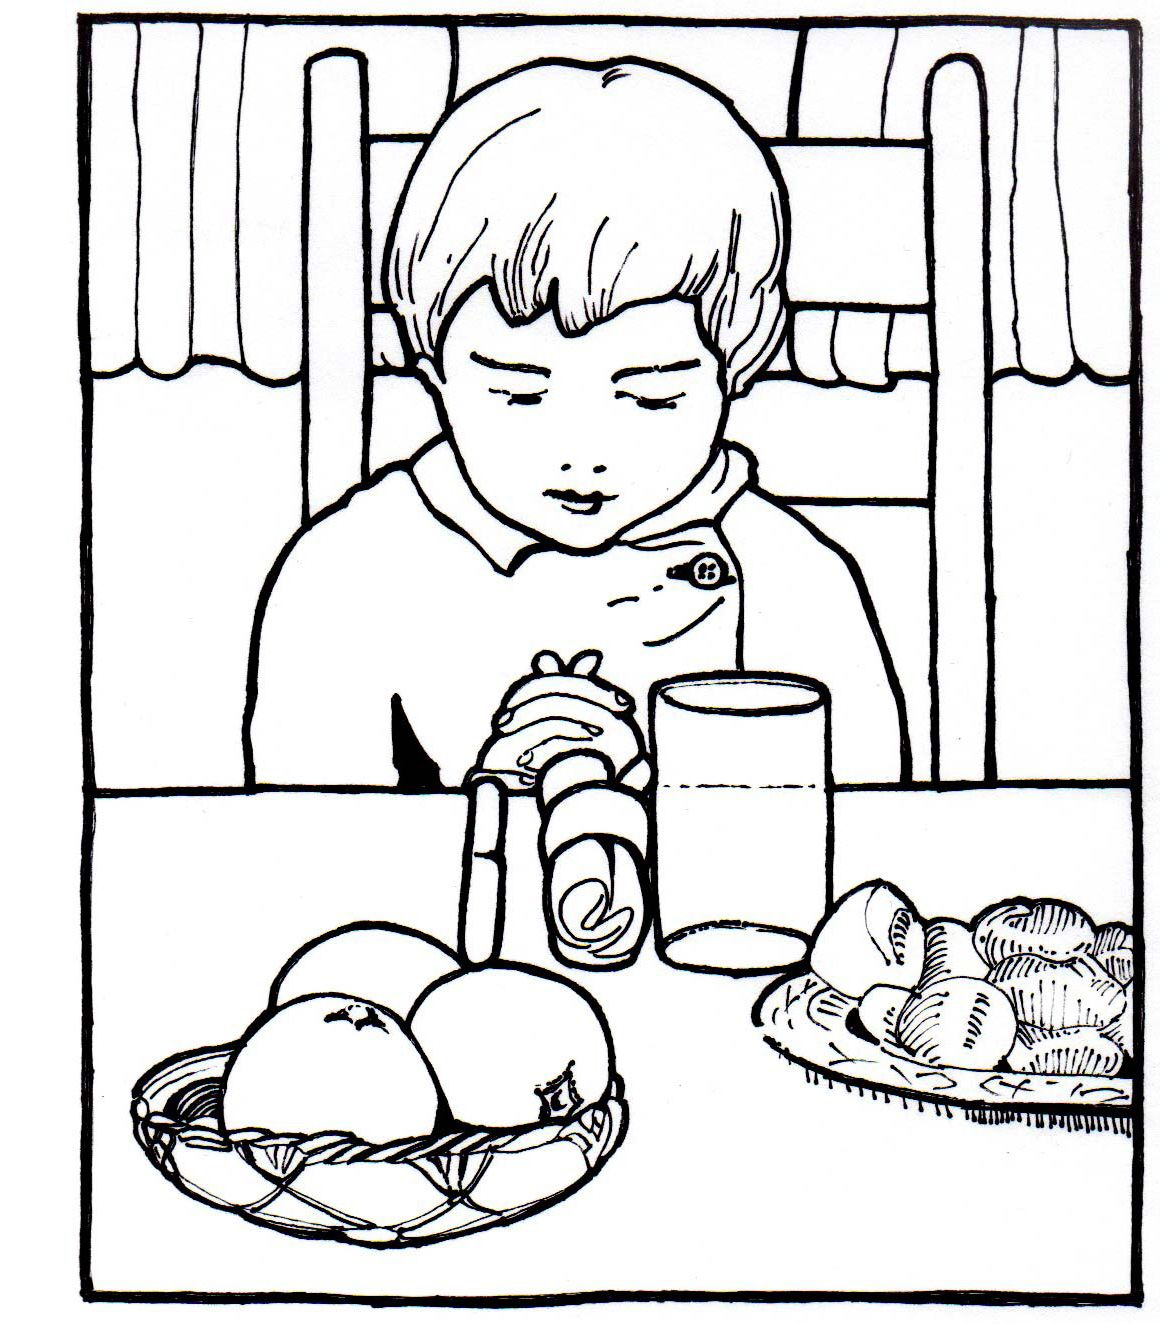 for the thank you jesus songrhyme christian coloring pages for kids - A Child God Coloring Page